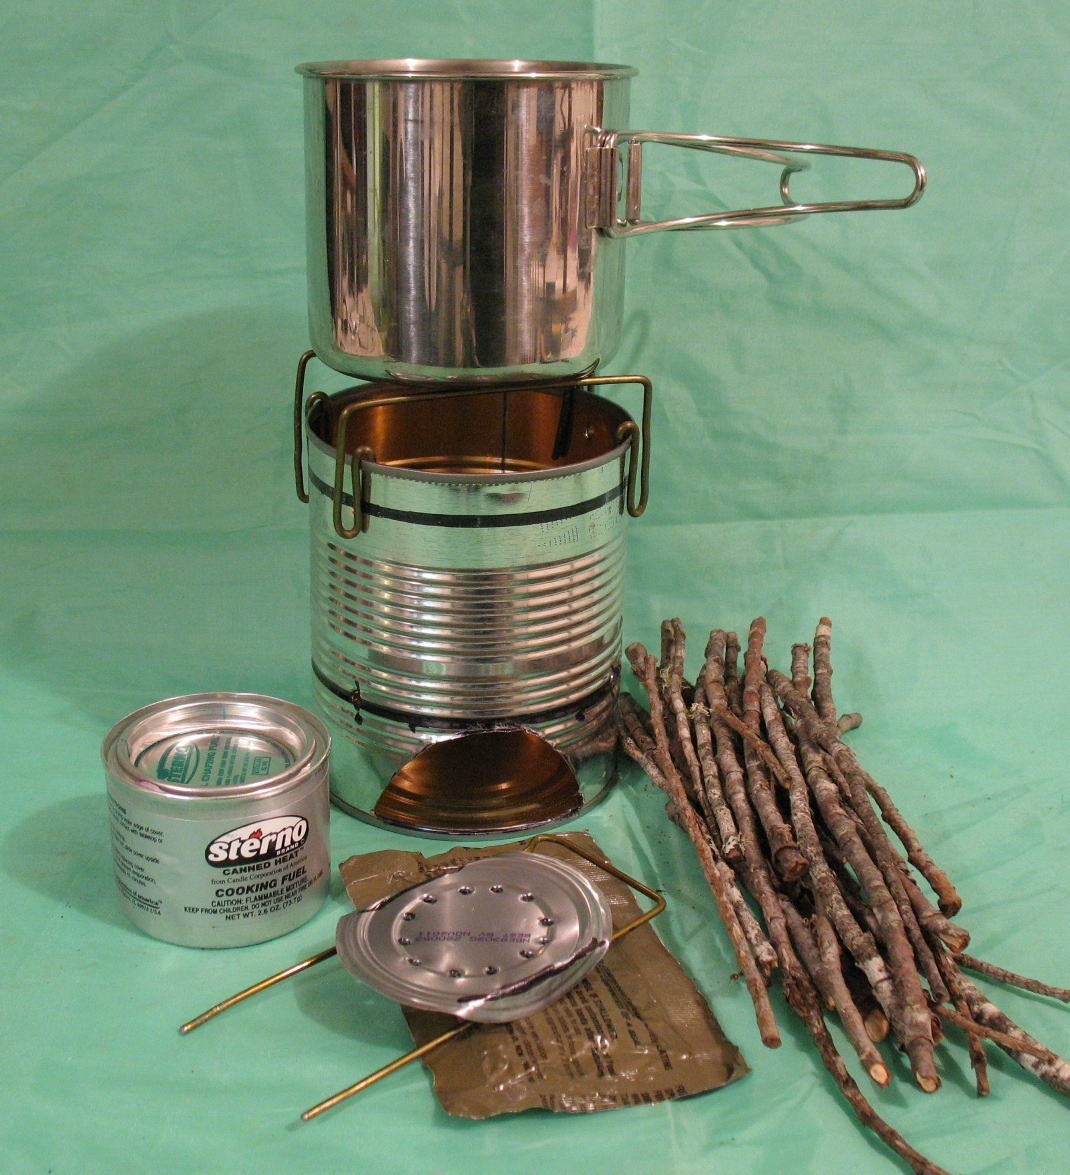 Three Fuel Stove